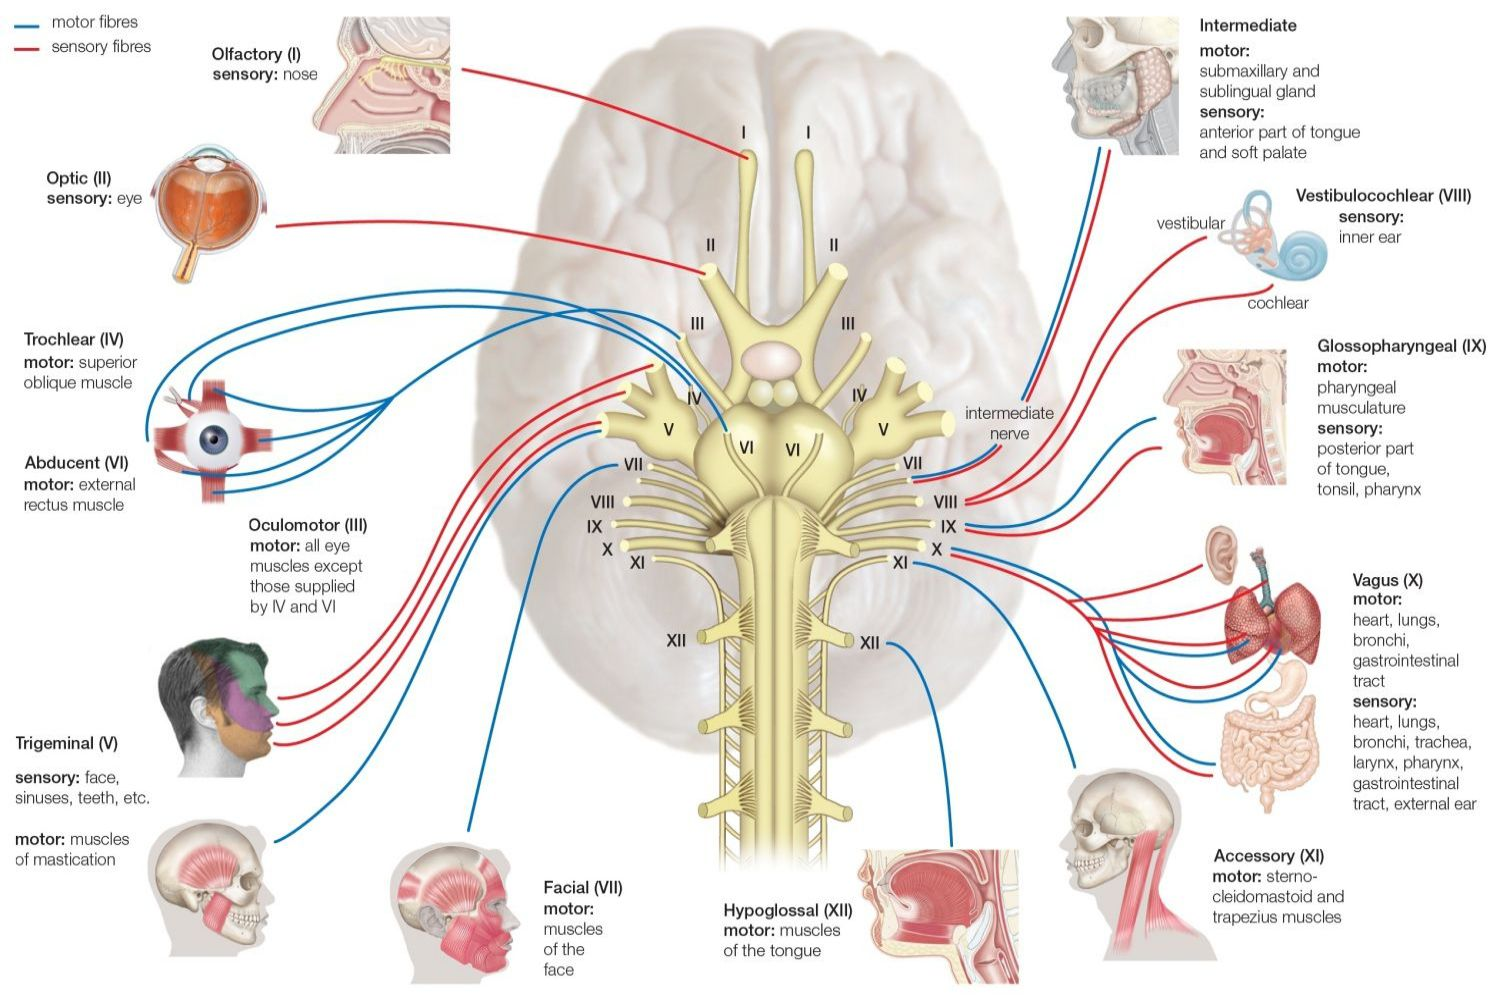 Names Functions And Locations Of Cranial Nerves